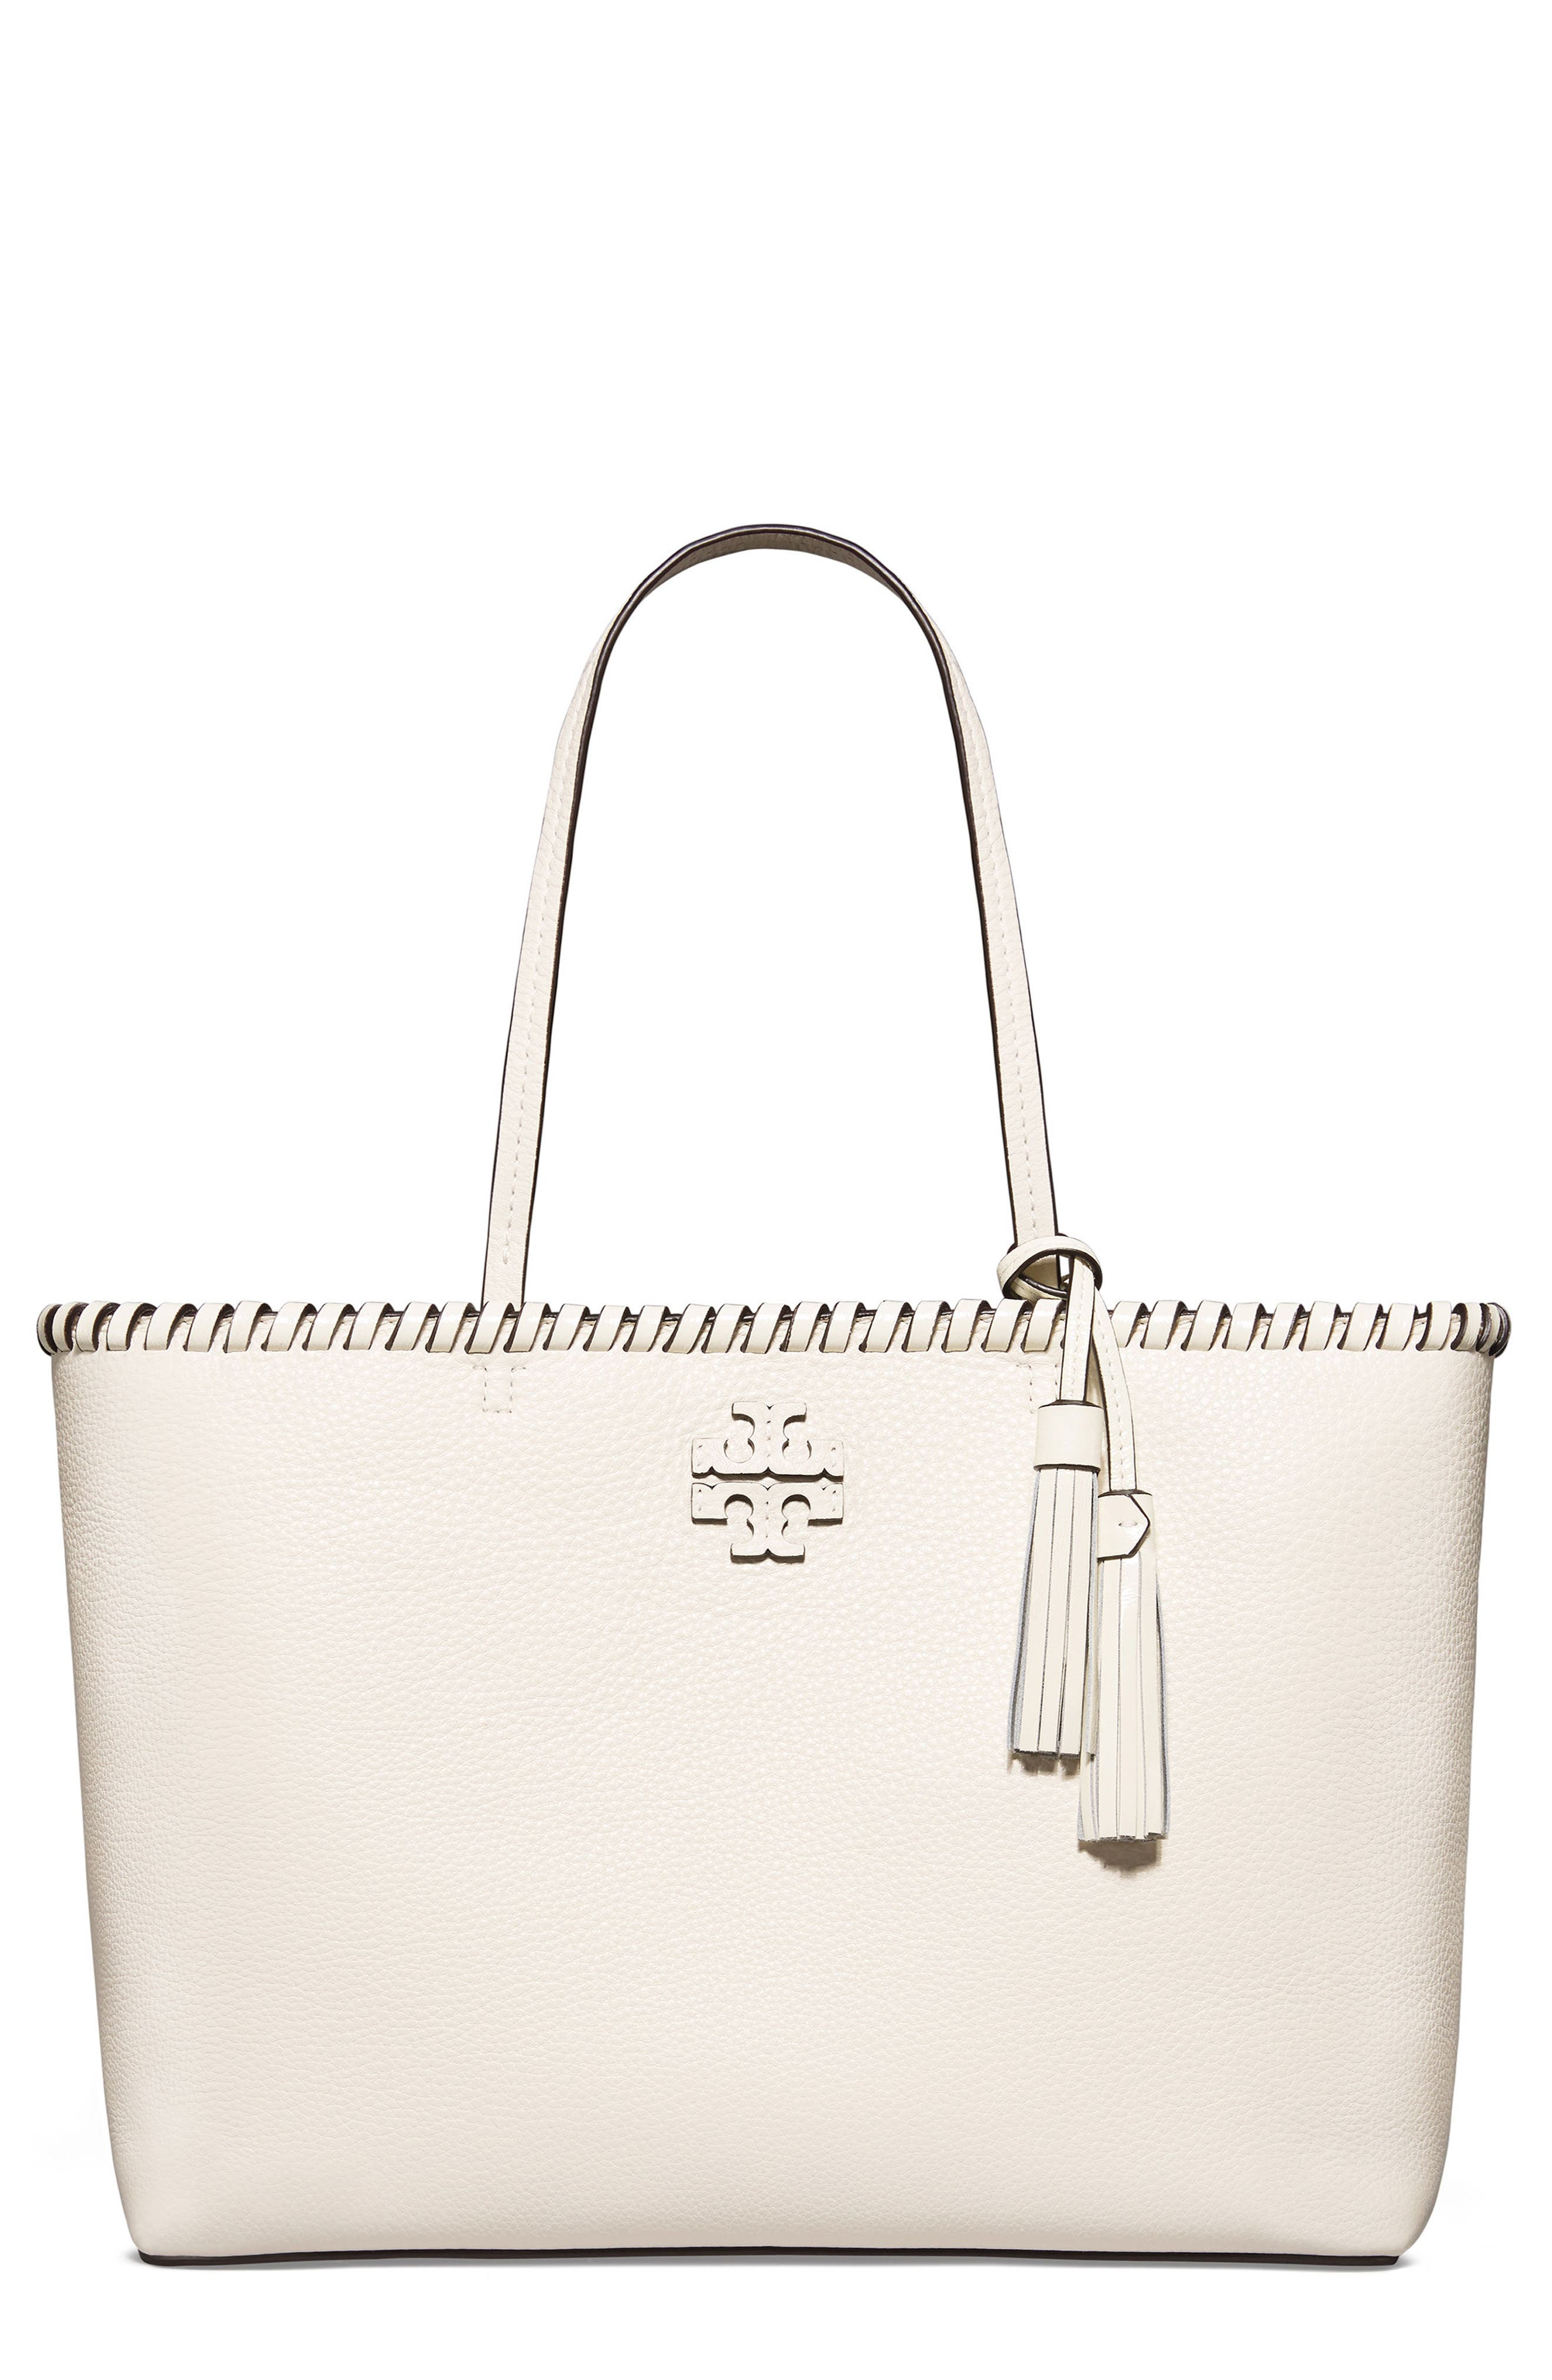 McGraw Whipstitch Leather Tote,                         Main,                         color, 100